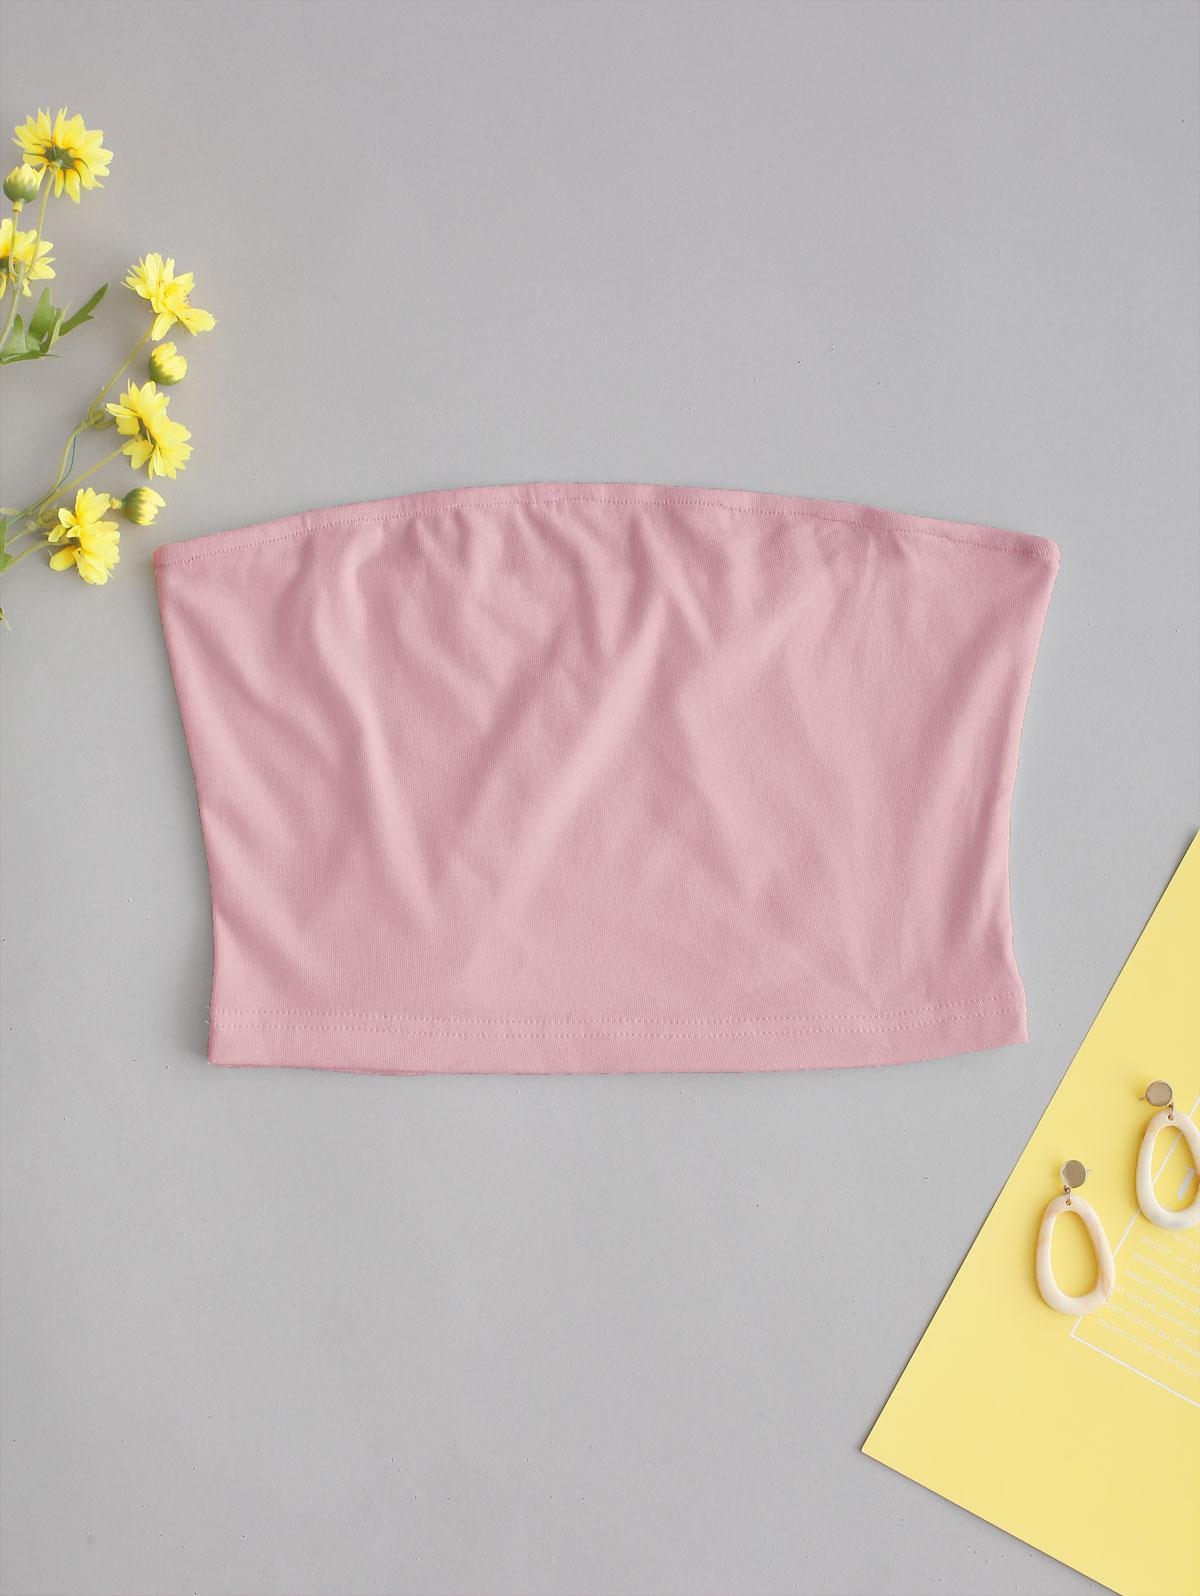 ZAFUL Solid Plain Bandeau Top, Pig pink